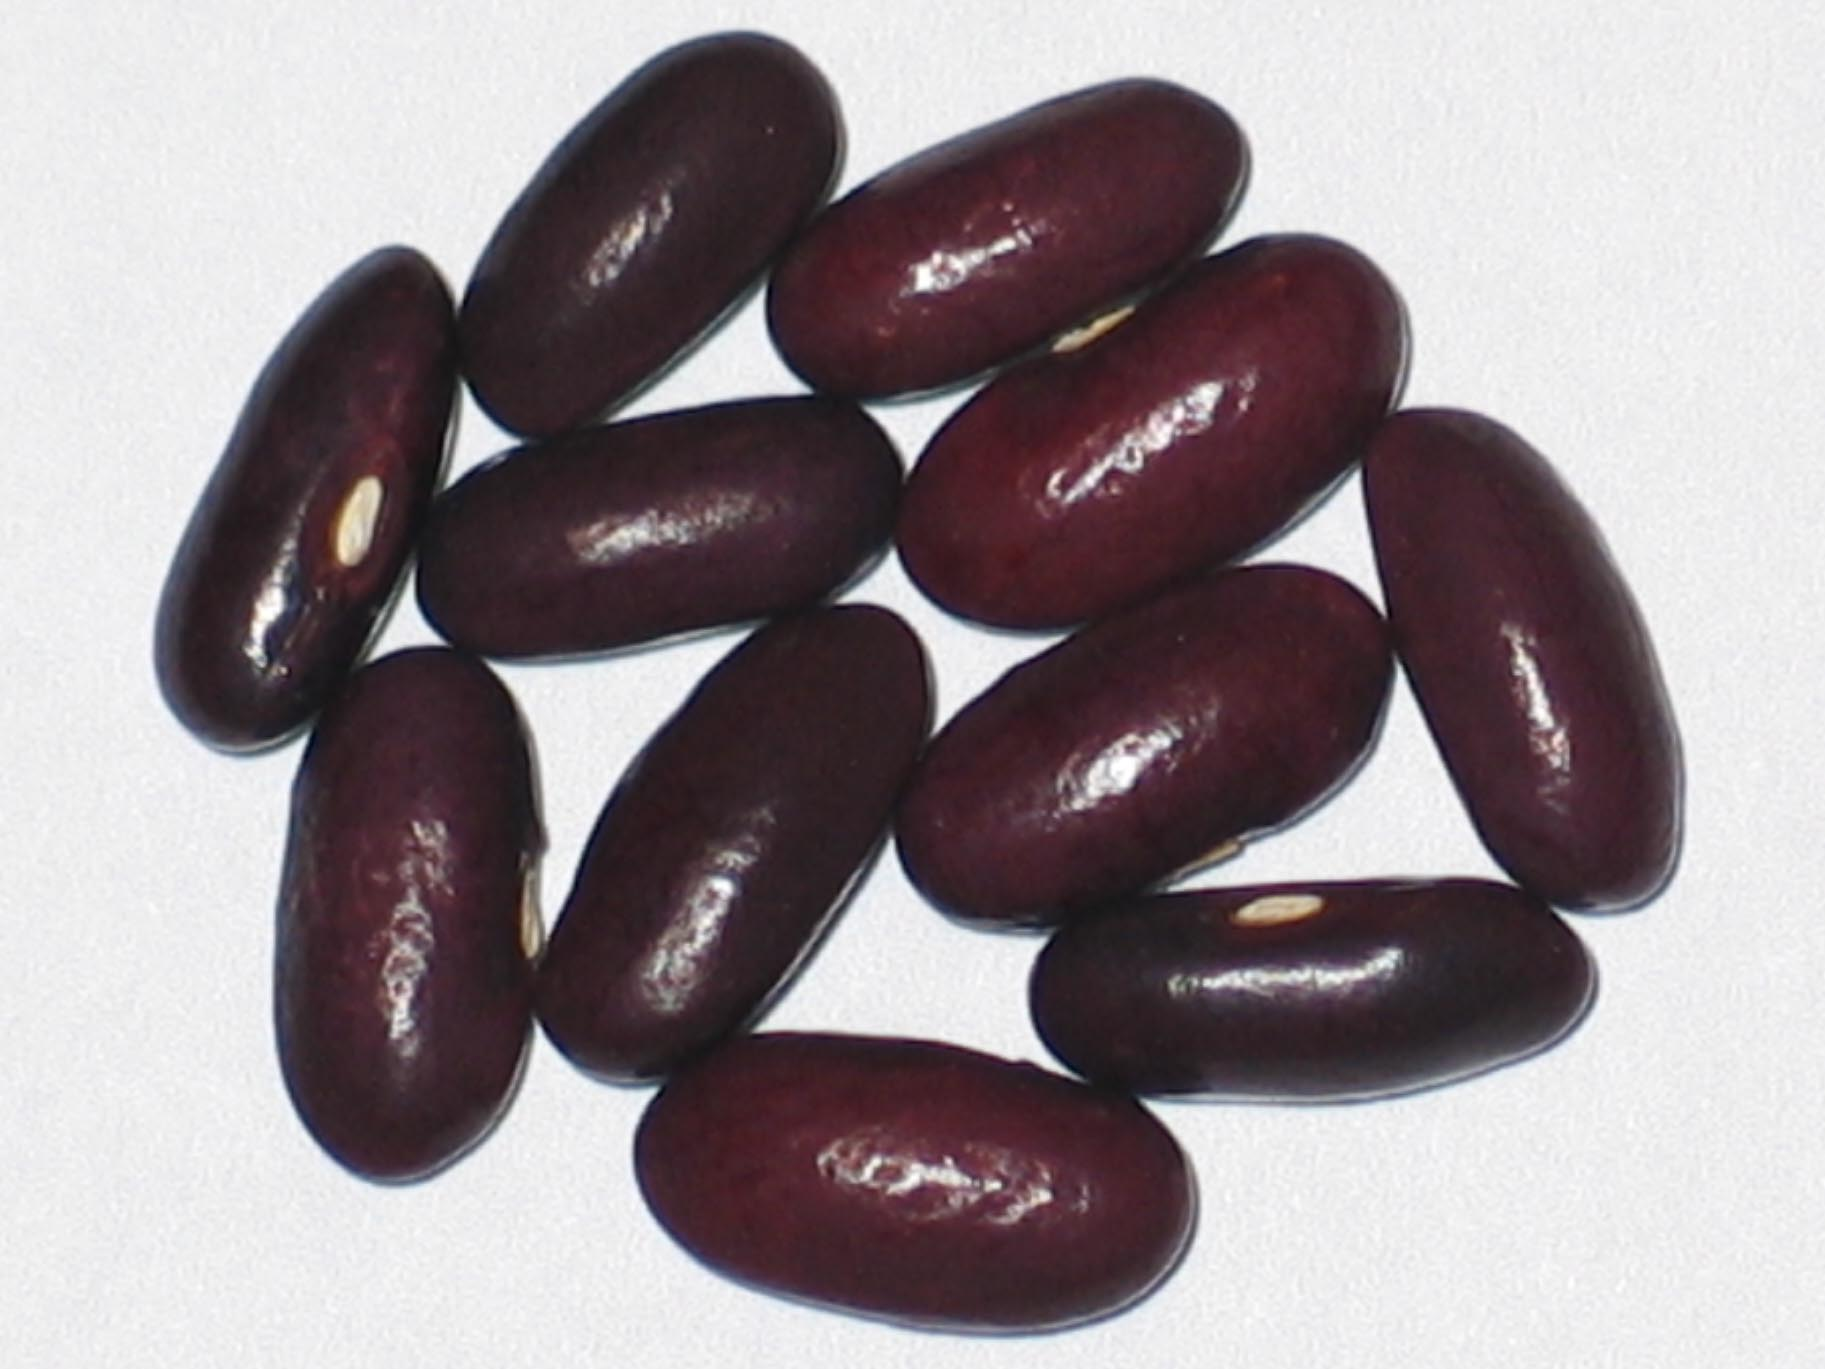 image of Provider beans